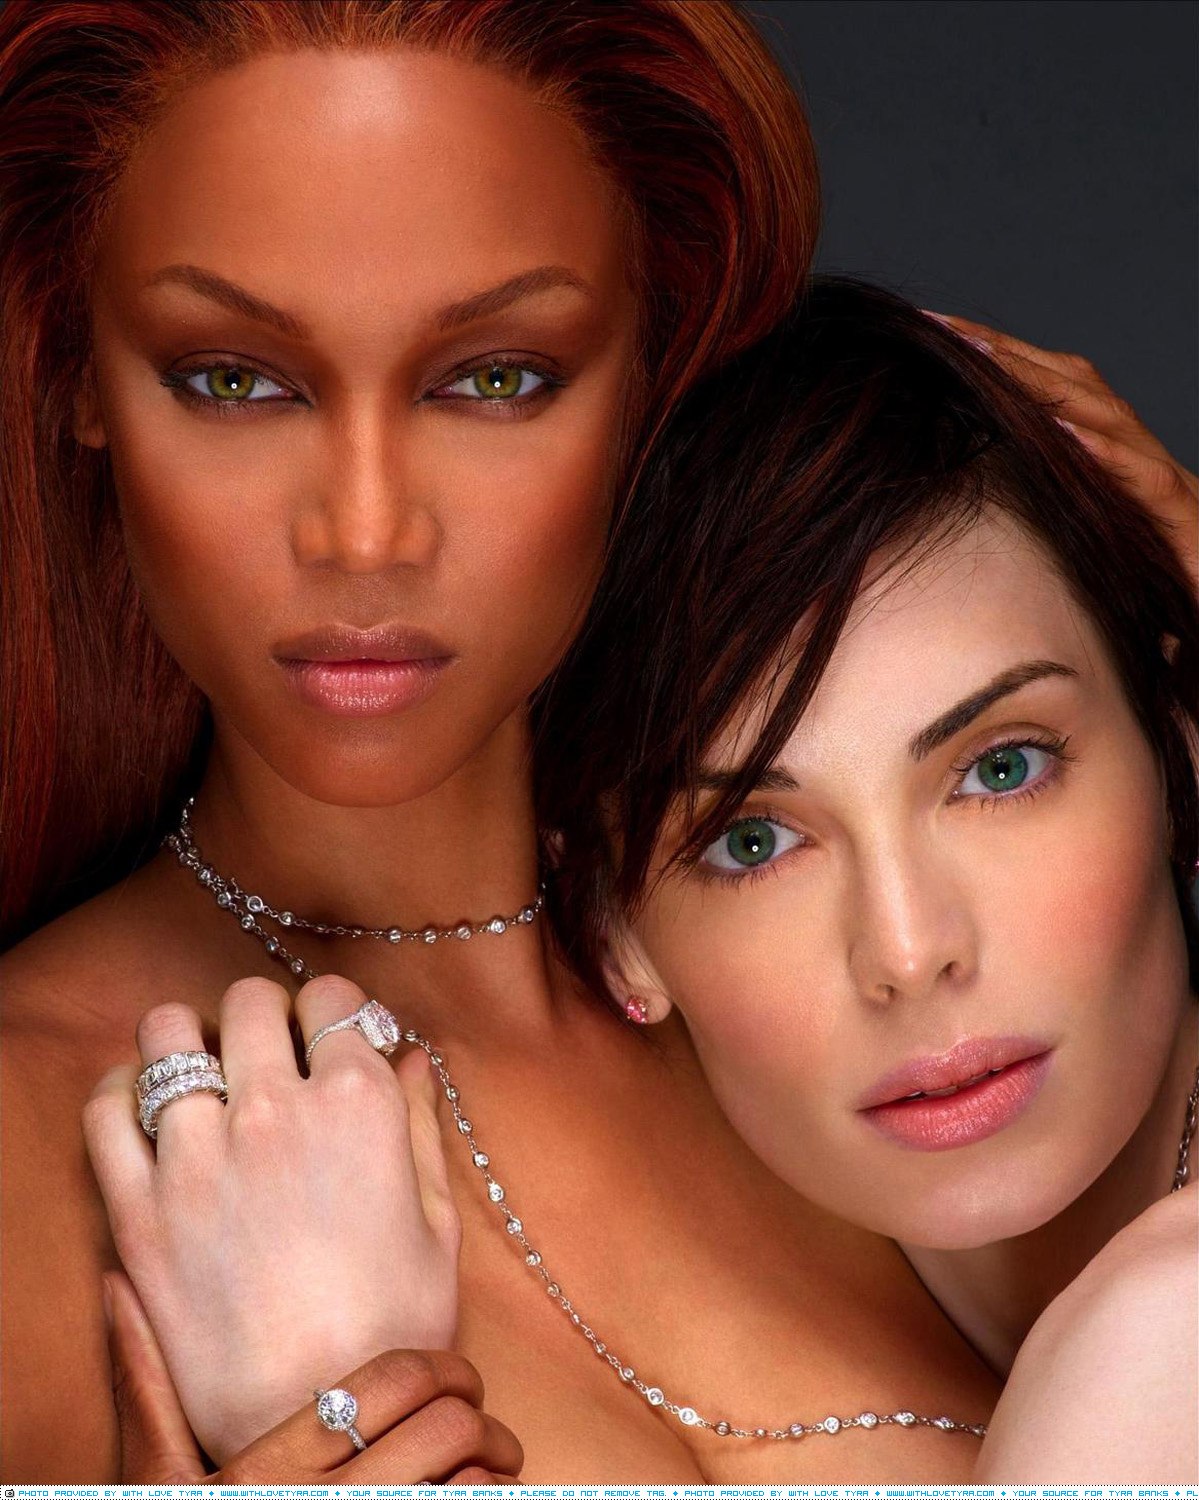 Joanna and tyra